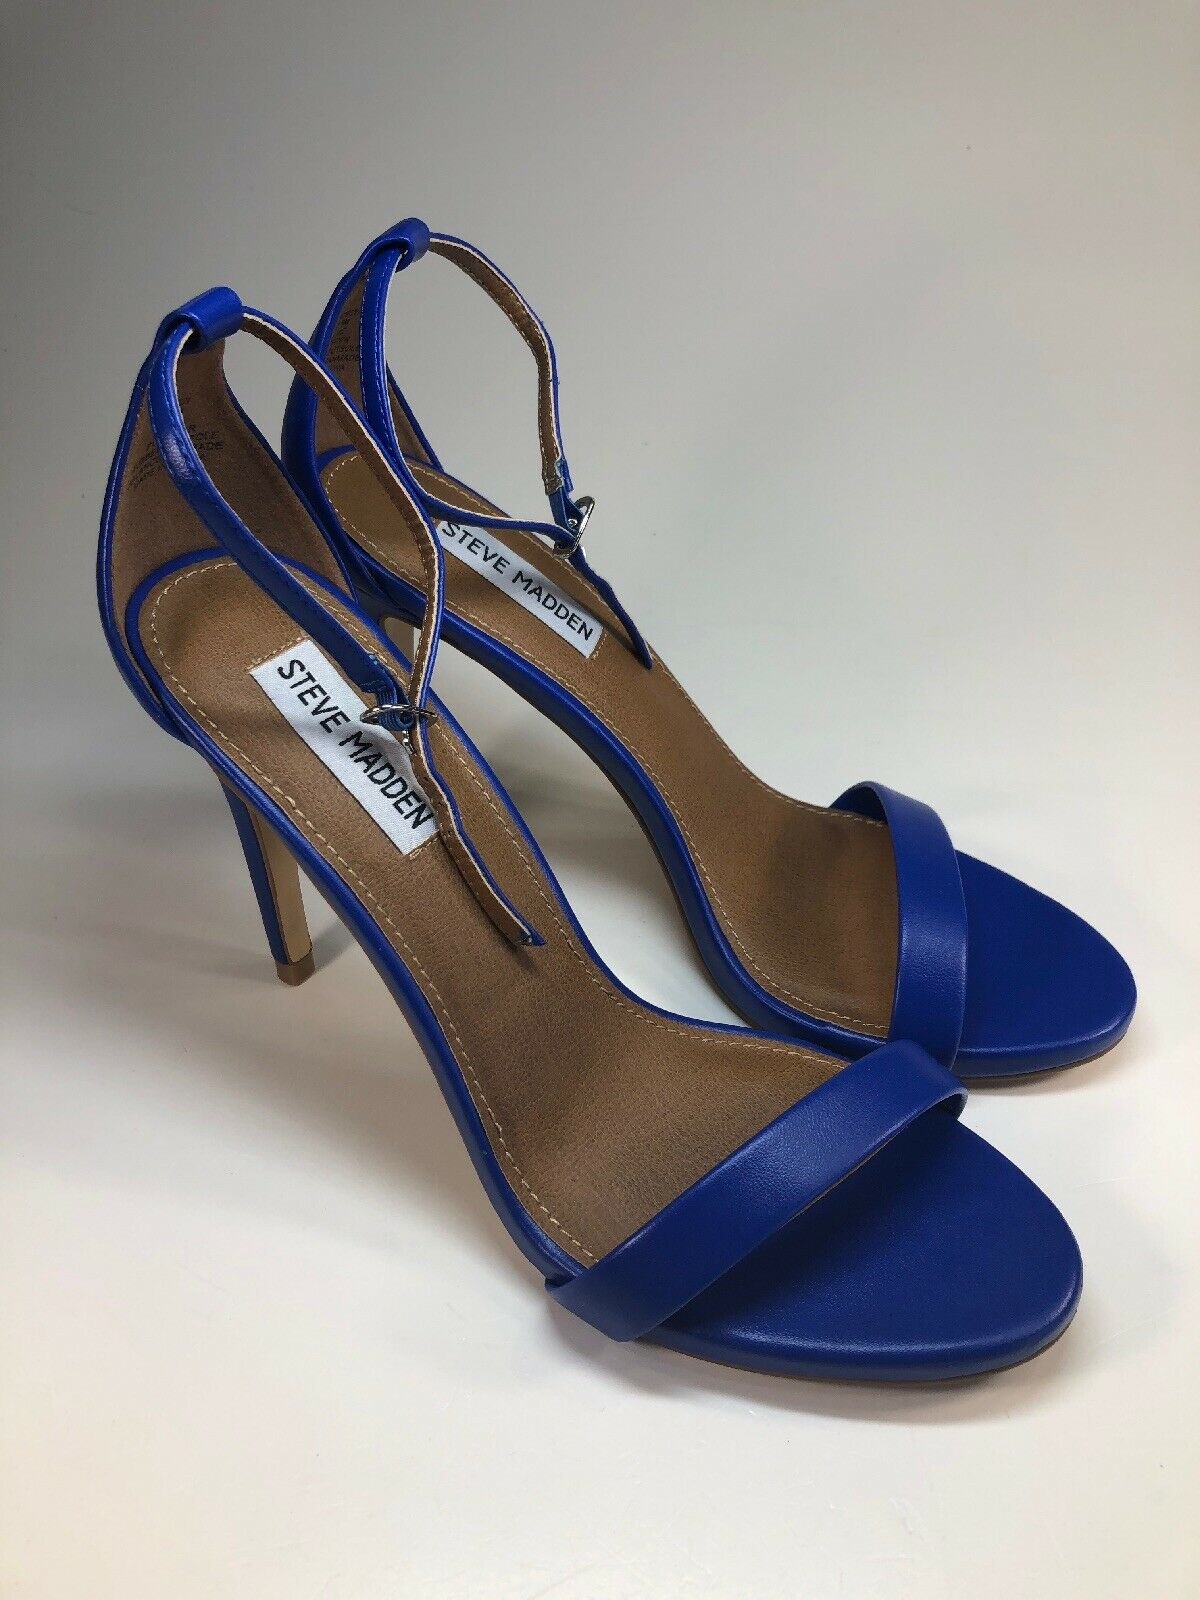 Steve Madden NEW STECY bluee Ankle Strap Heels Pumps Womens Size 8.5 M